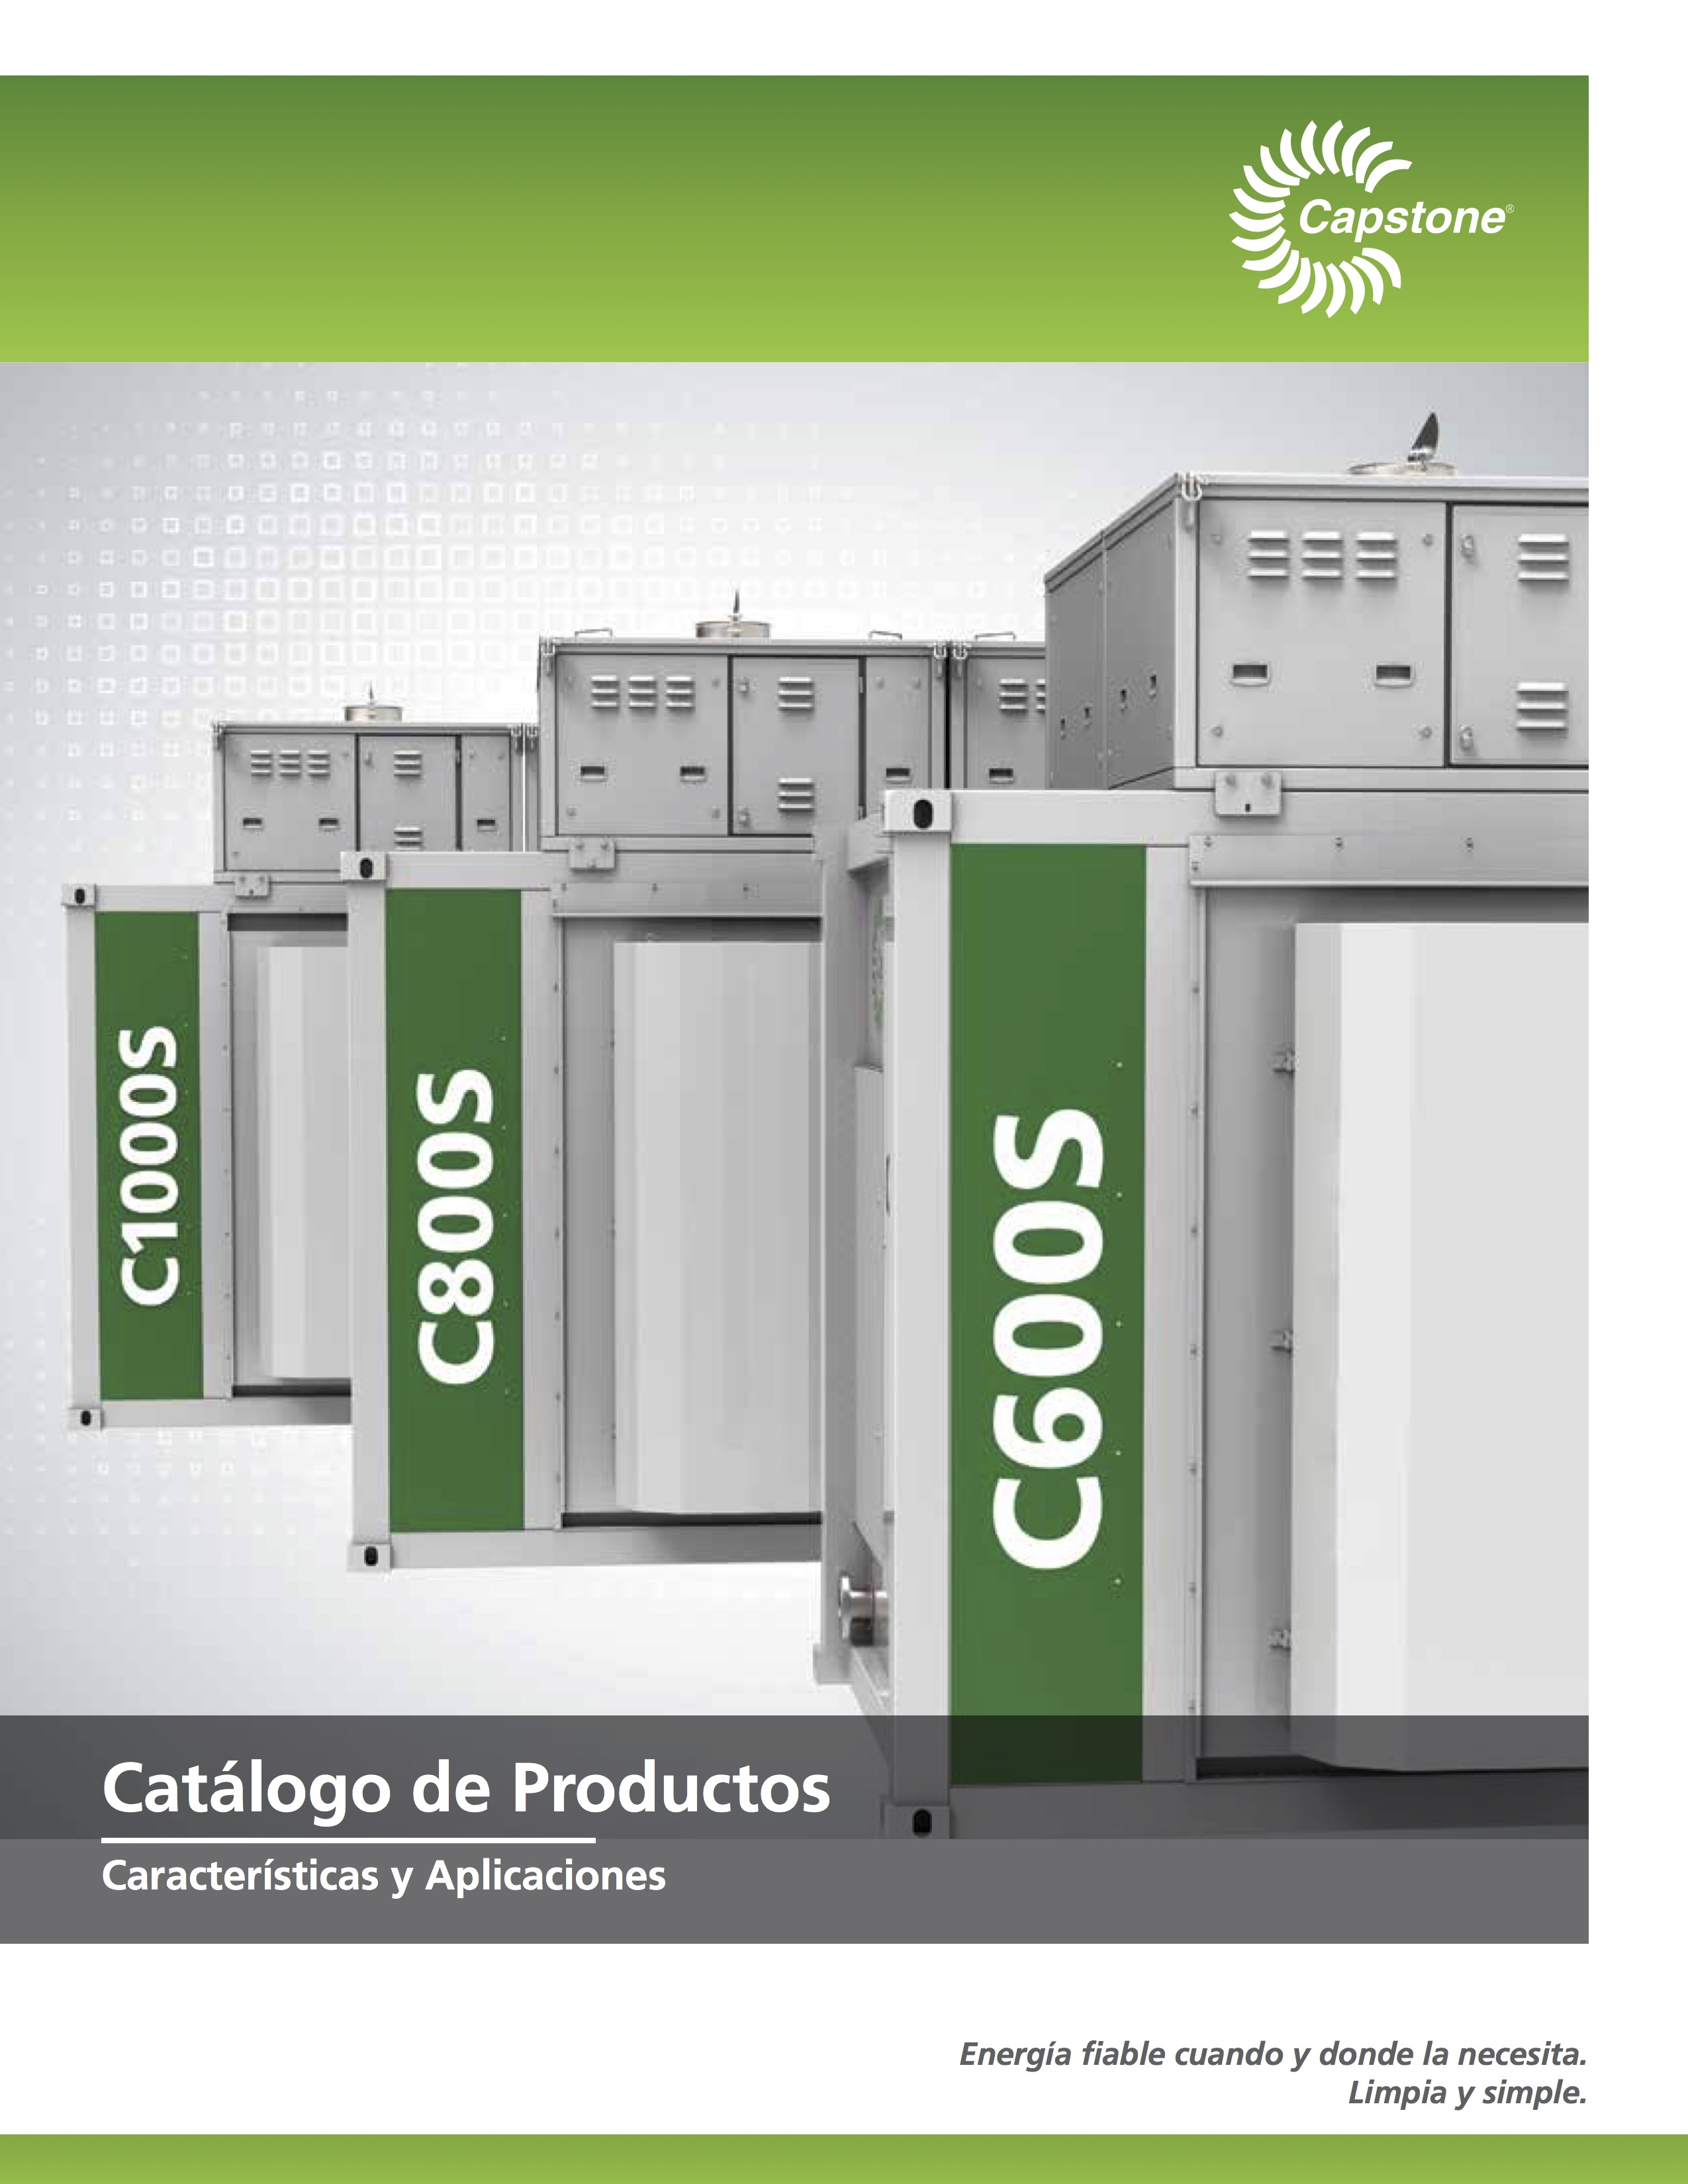 Product Catalog (Spanish)